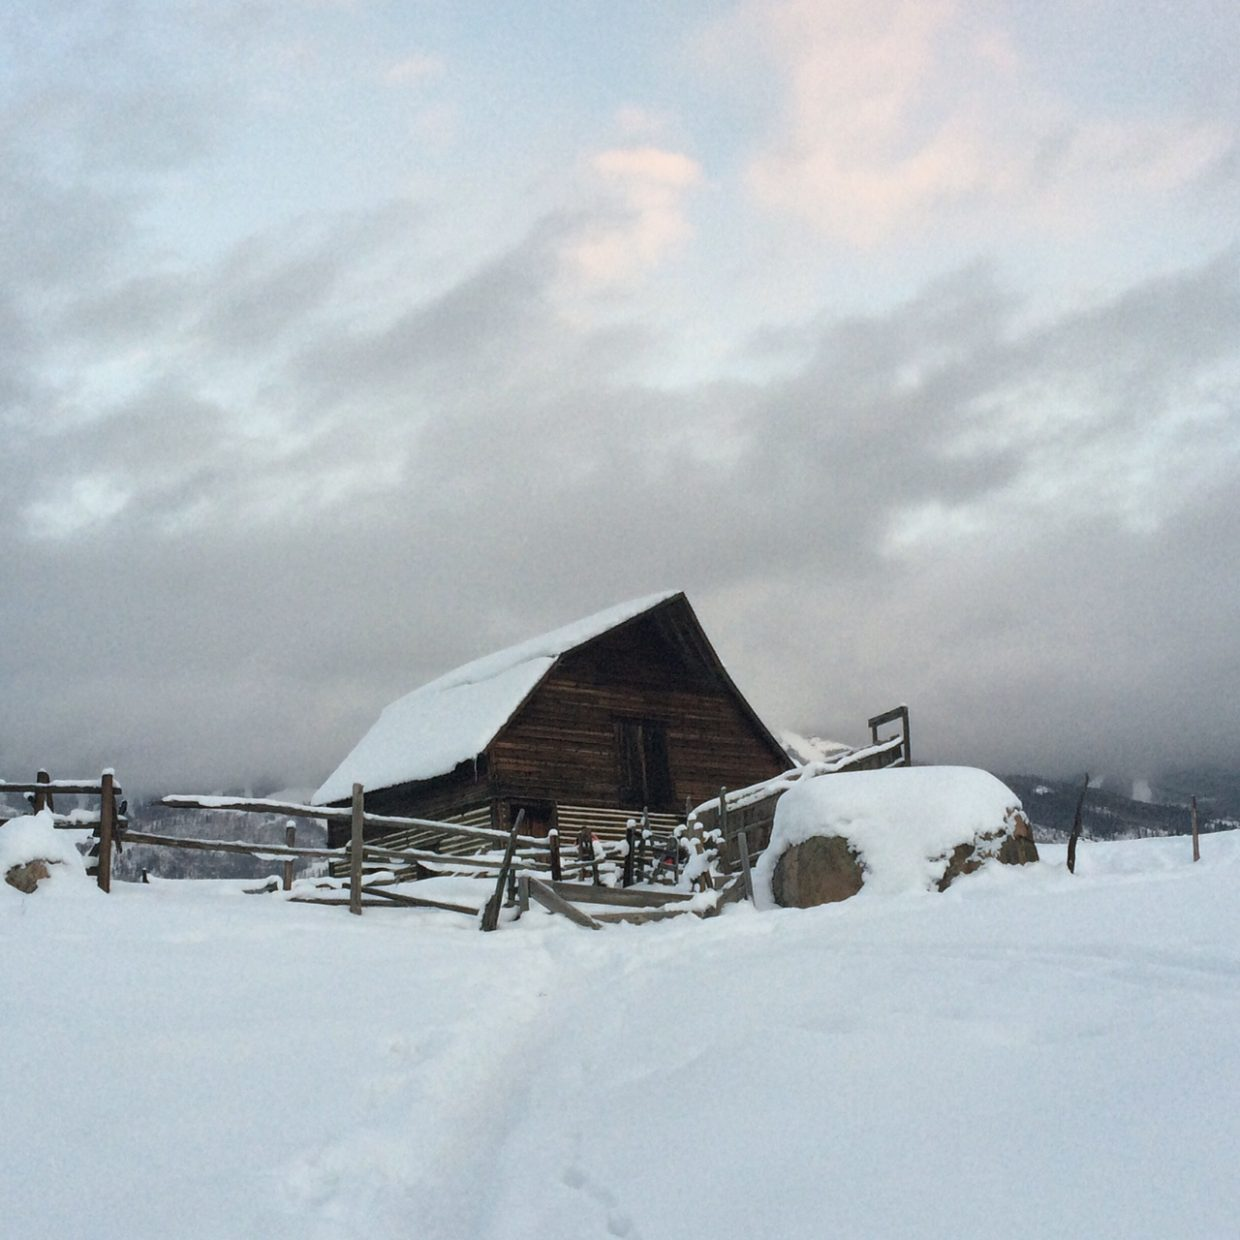 The Iconic Steamboat Barn. Submitted by: Linda Briseno